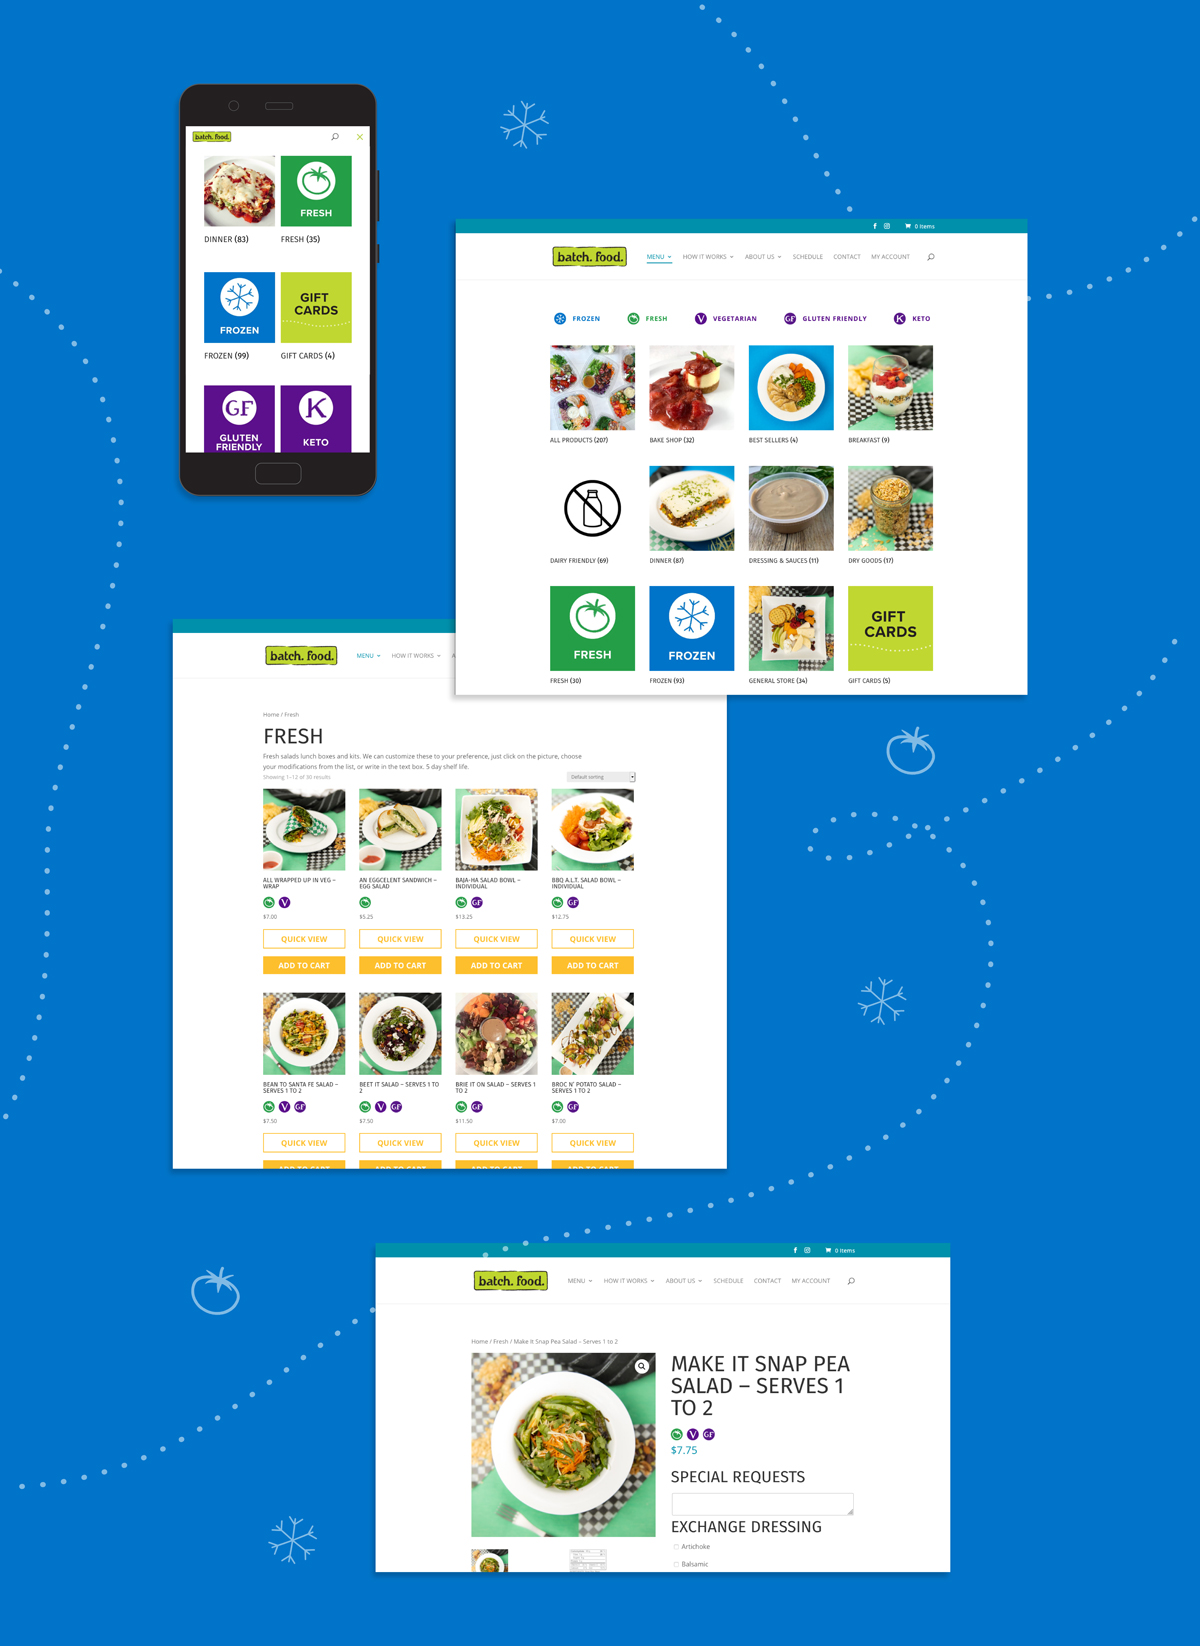 Image shows the batch food website on mobile phone and desktop. On all screens there are icons representing food categories, like fresh or frozen. The screens how how these apper on different parts of the site, like while browsing the menu or on a product page.